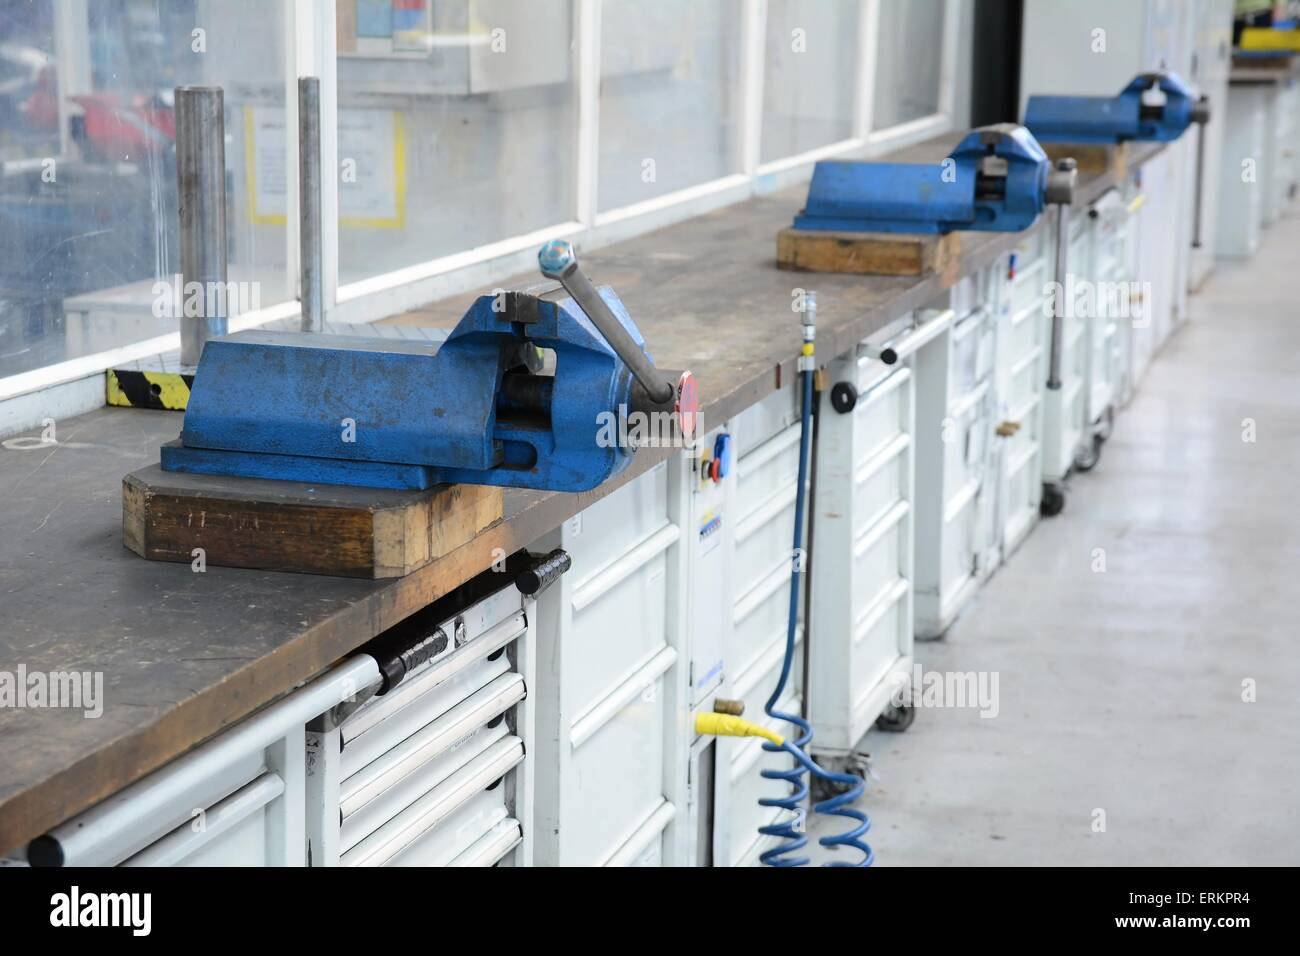 Vice clamps on the bench in the factory hall. - Stock Image